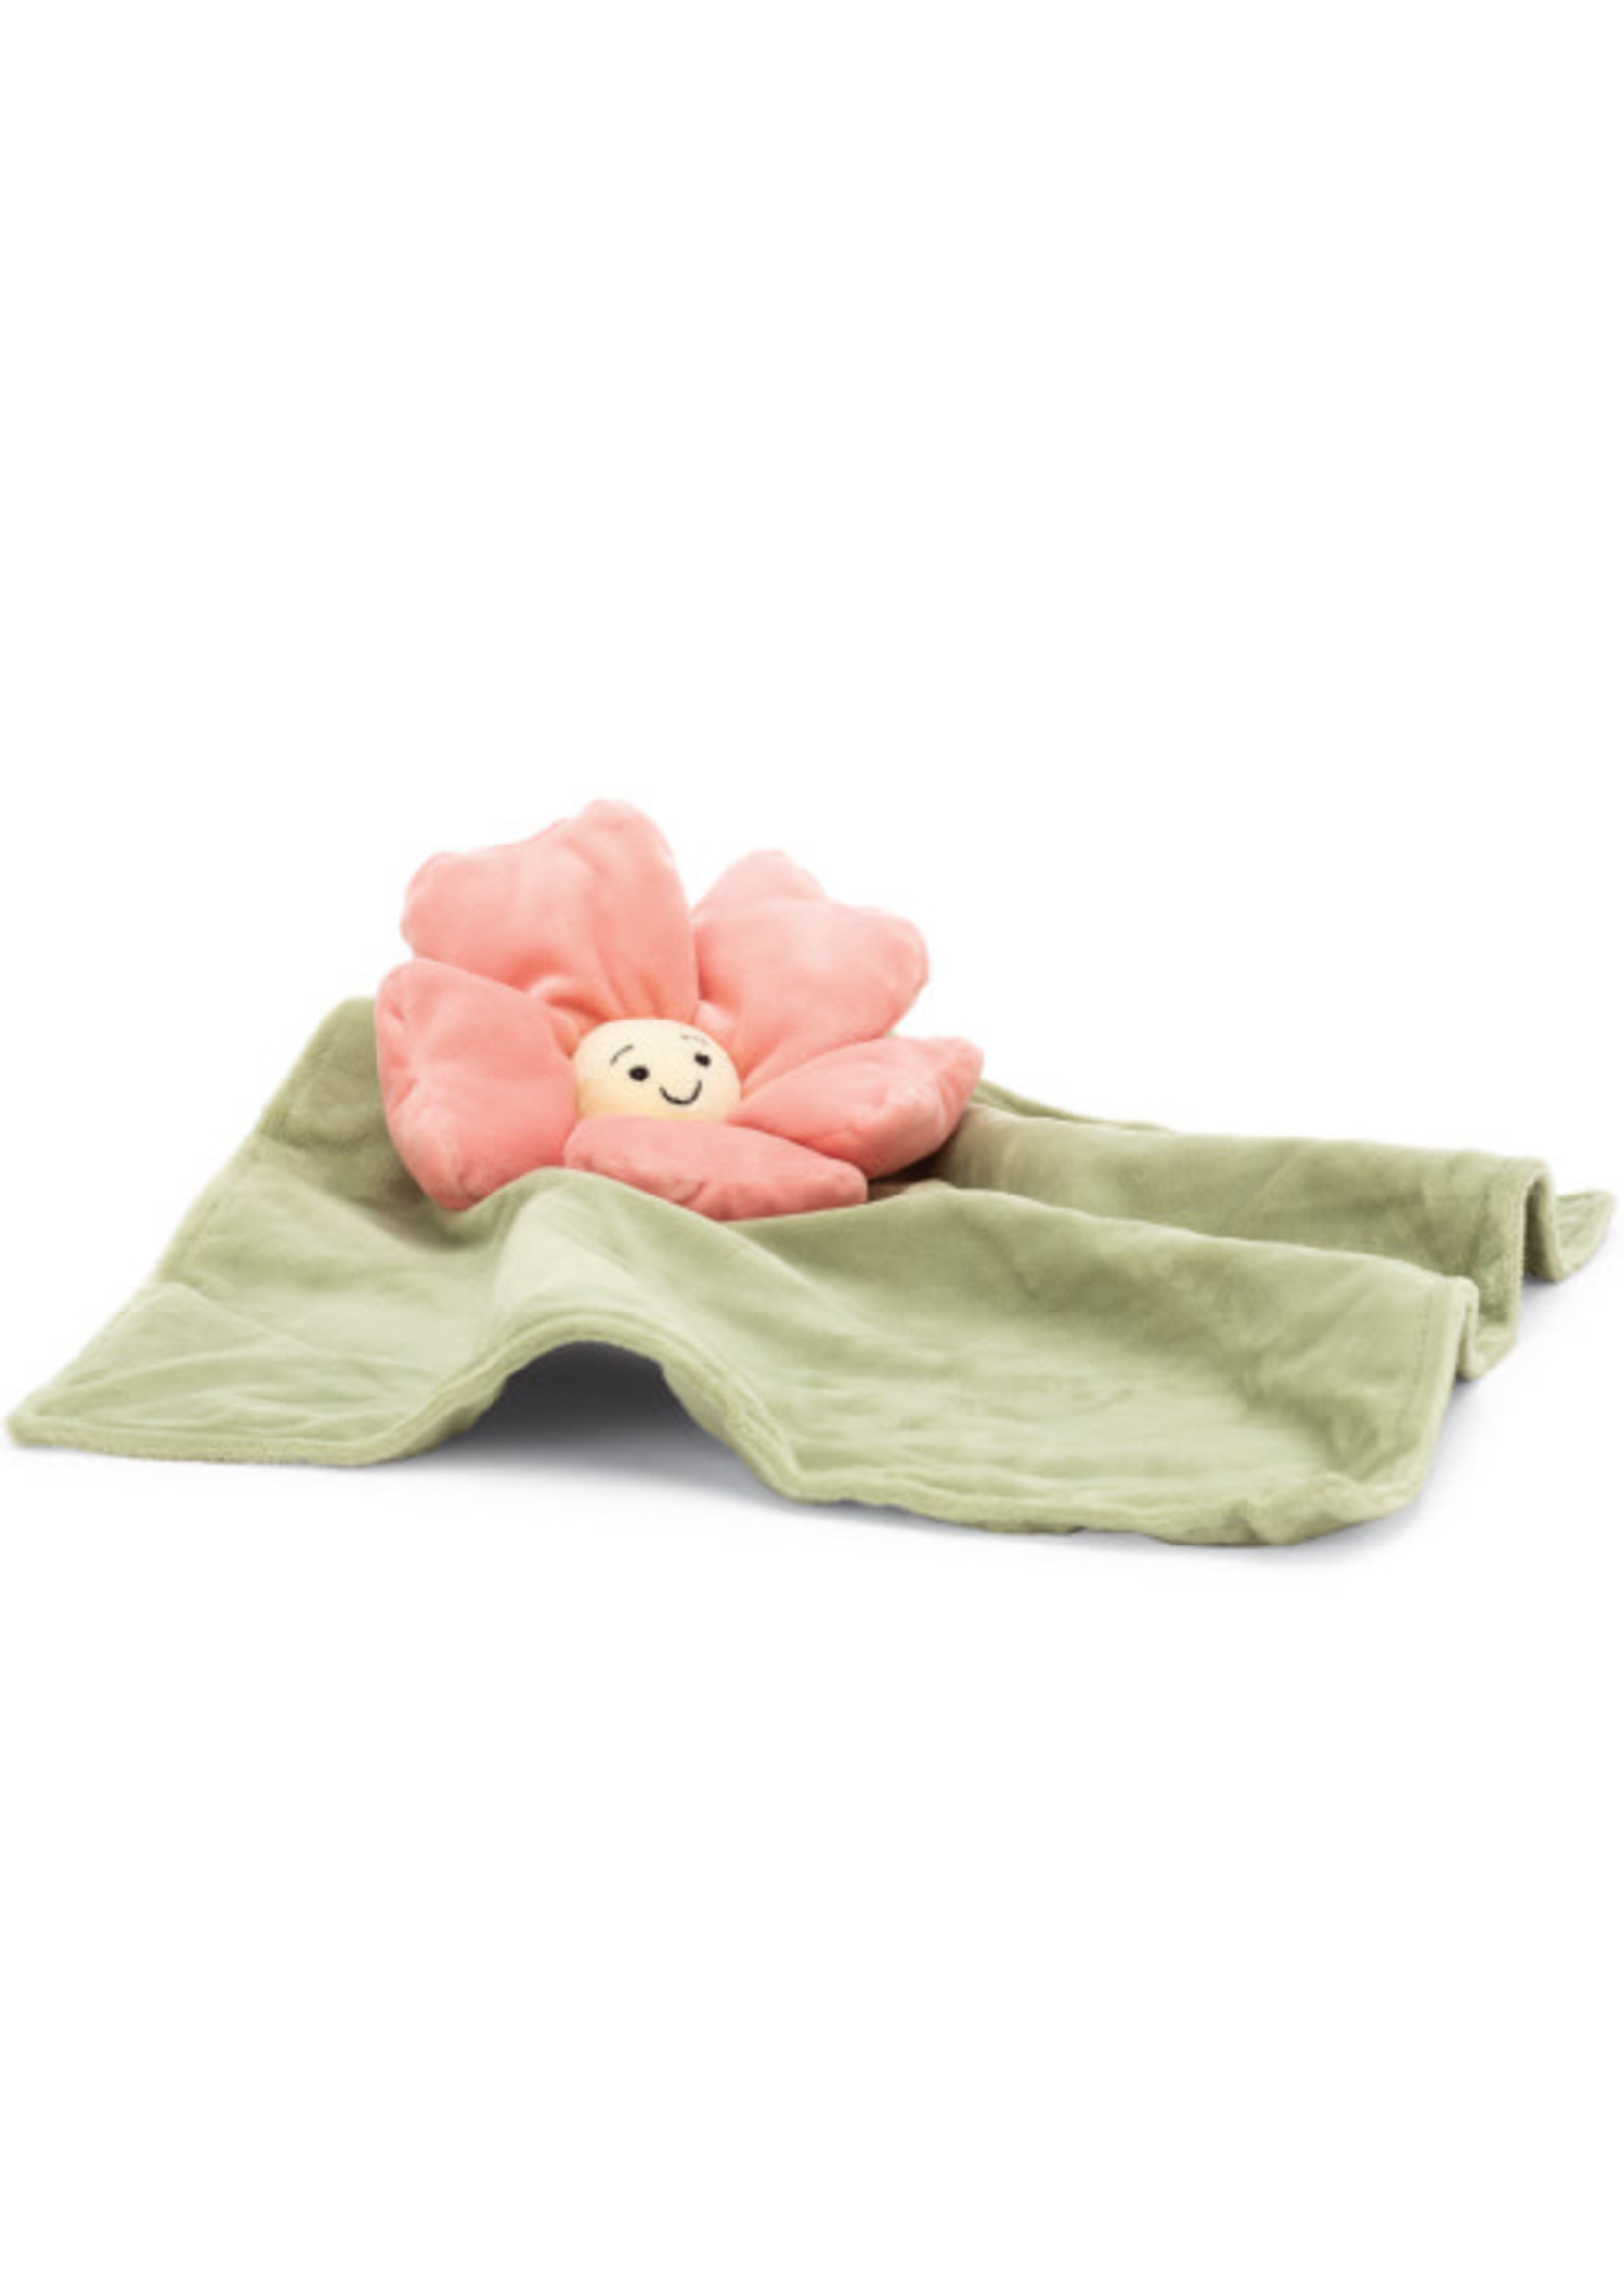 Jellycat JC Fleury Petunia Soother